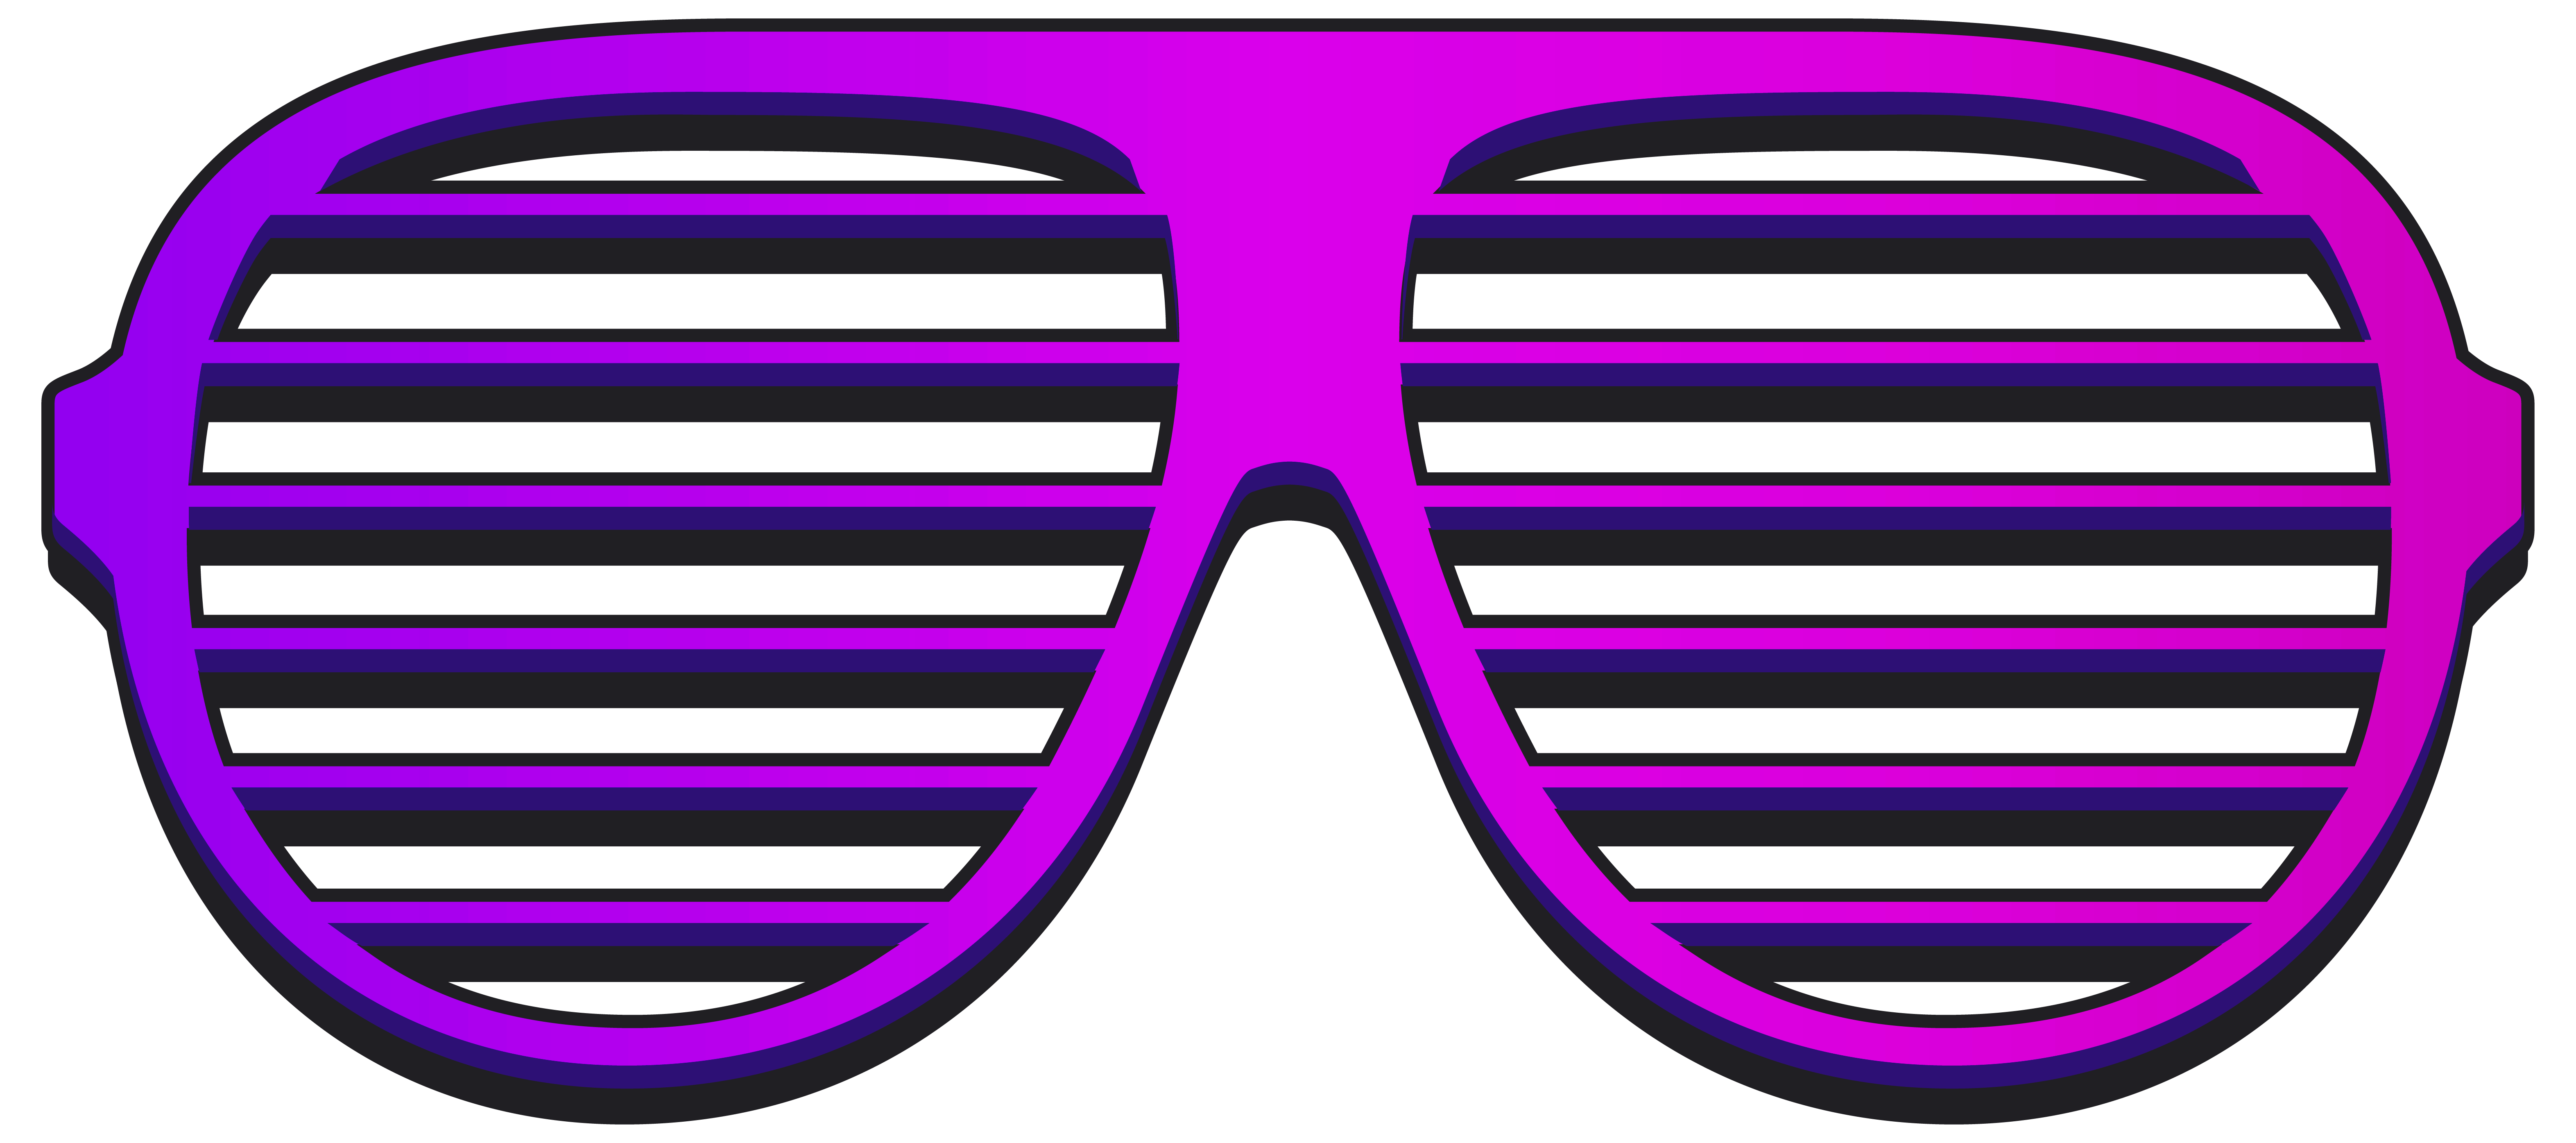 Shades clipart png. Cool shutter image gallery